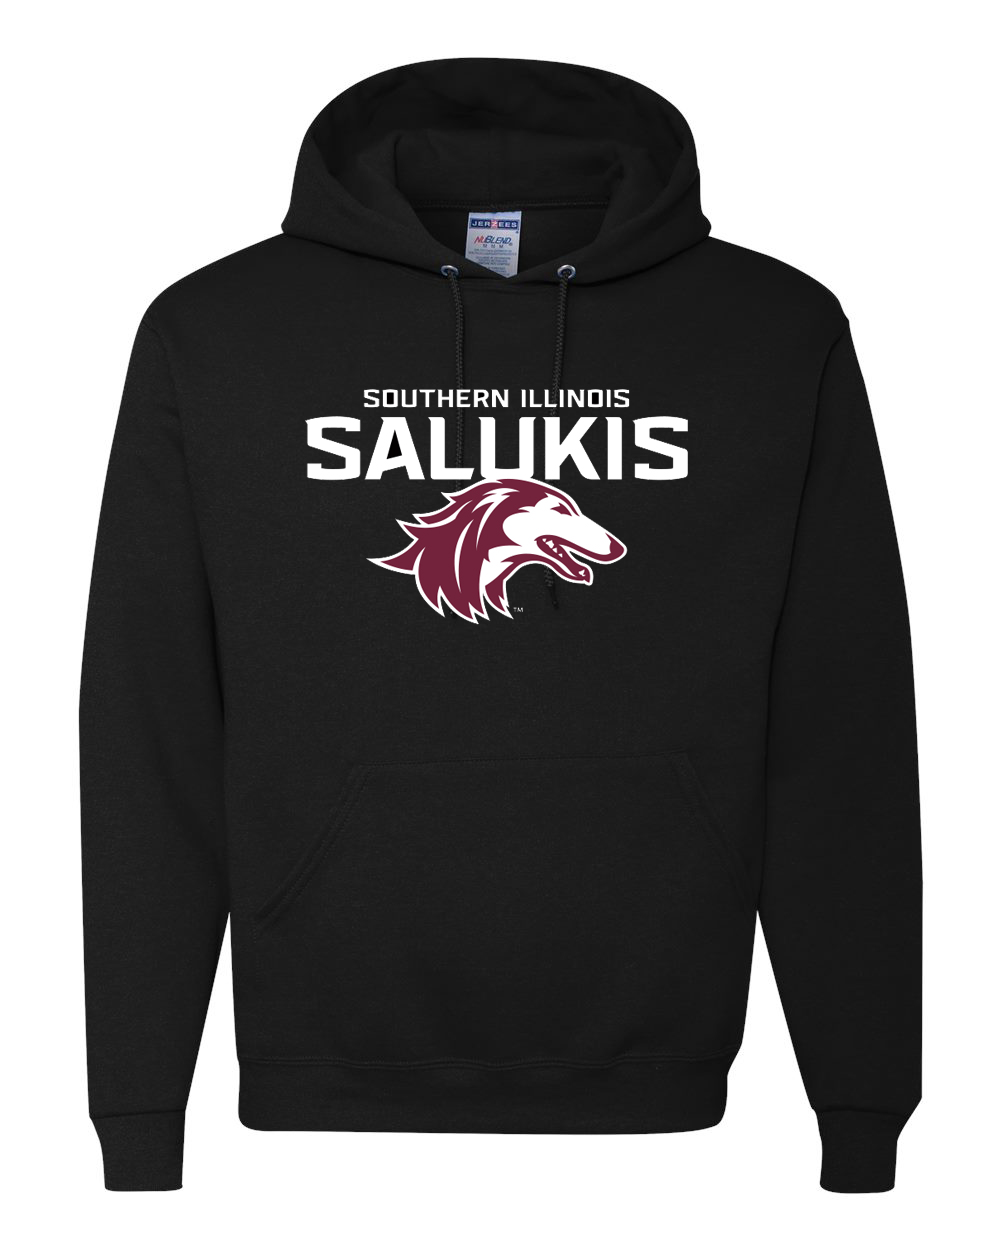 Image for the NEW BLACK 2019 ATHLETIC LOGO SOUTHERN ILLINOIS SALUKIS HOOD product